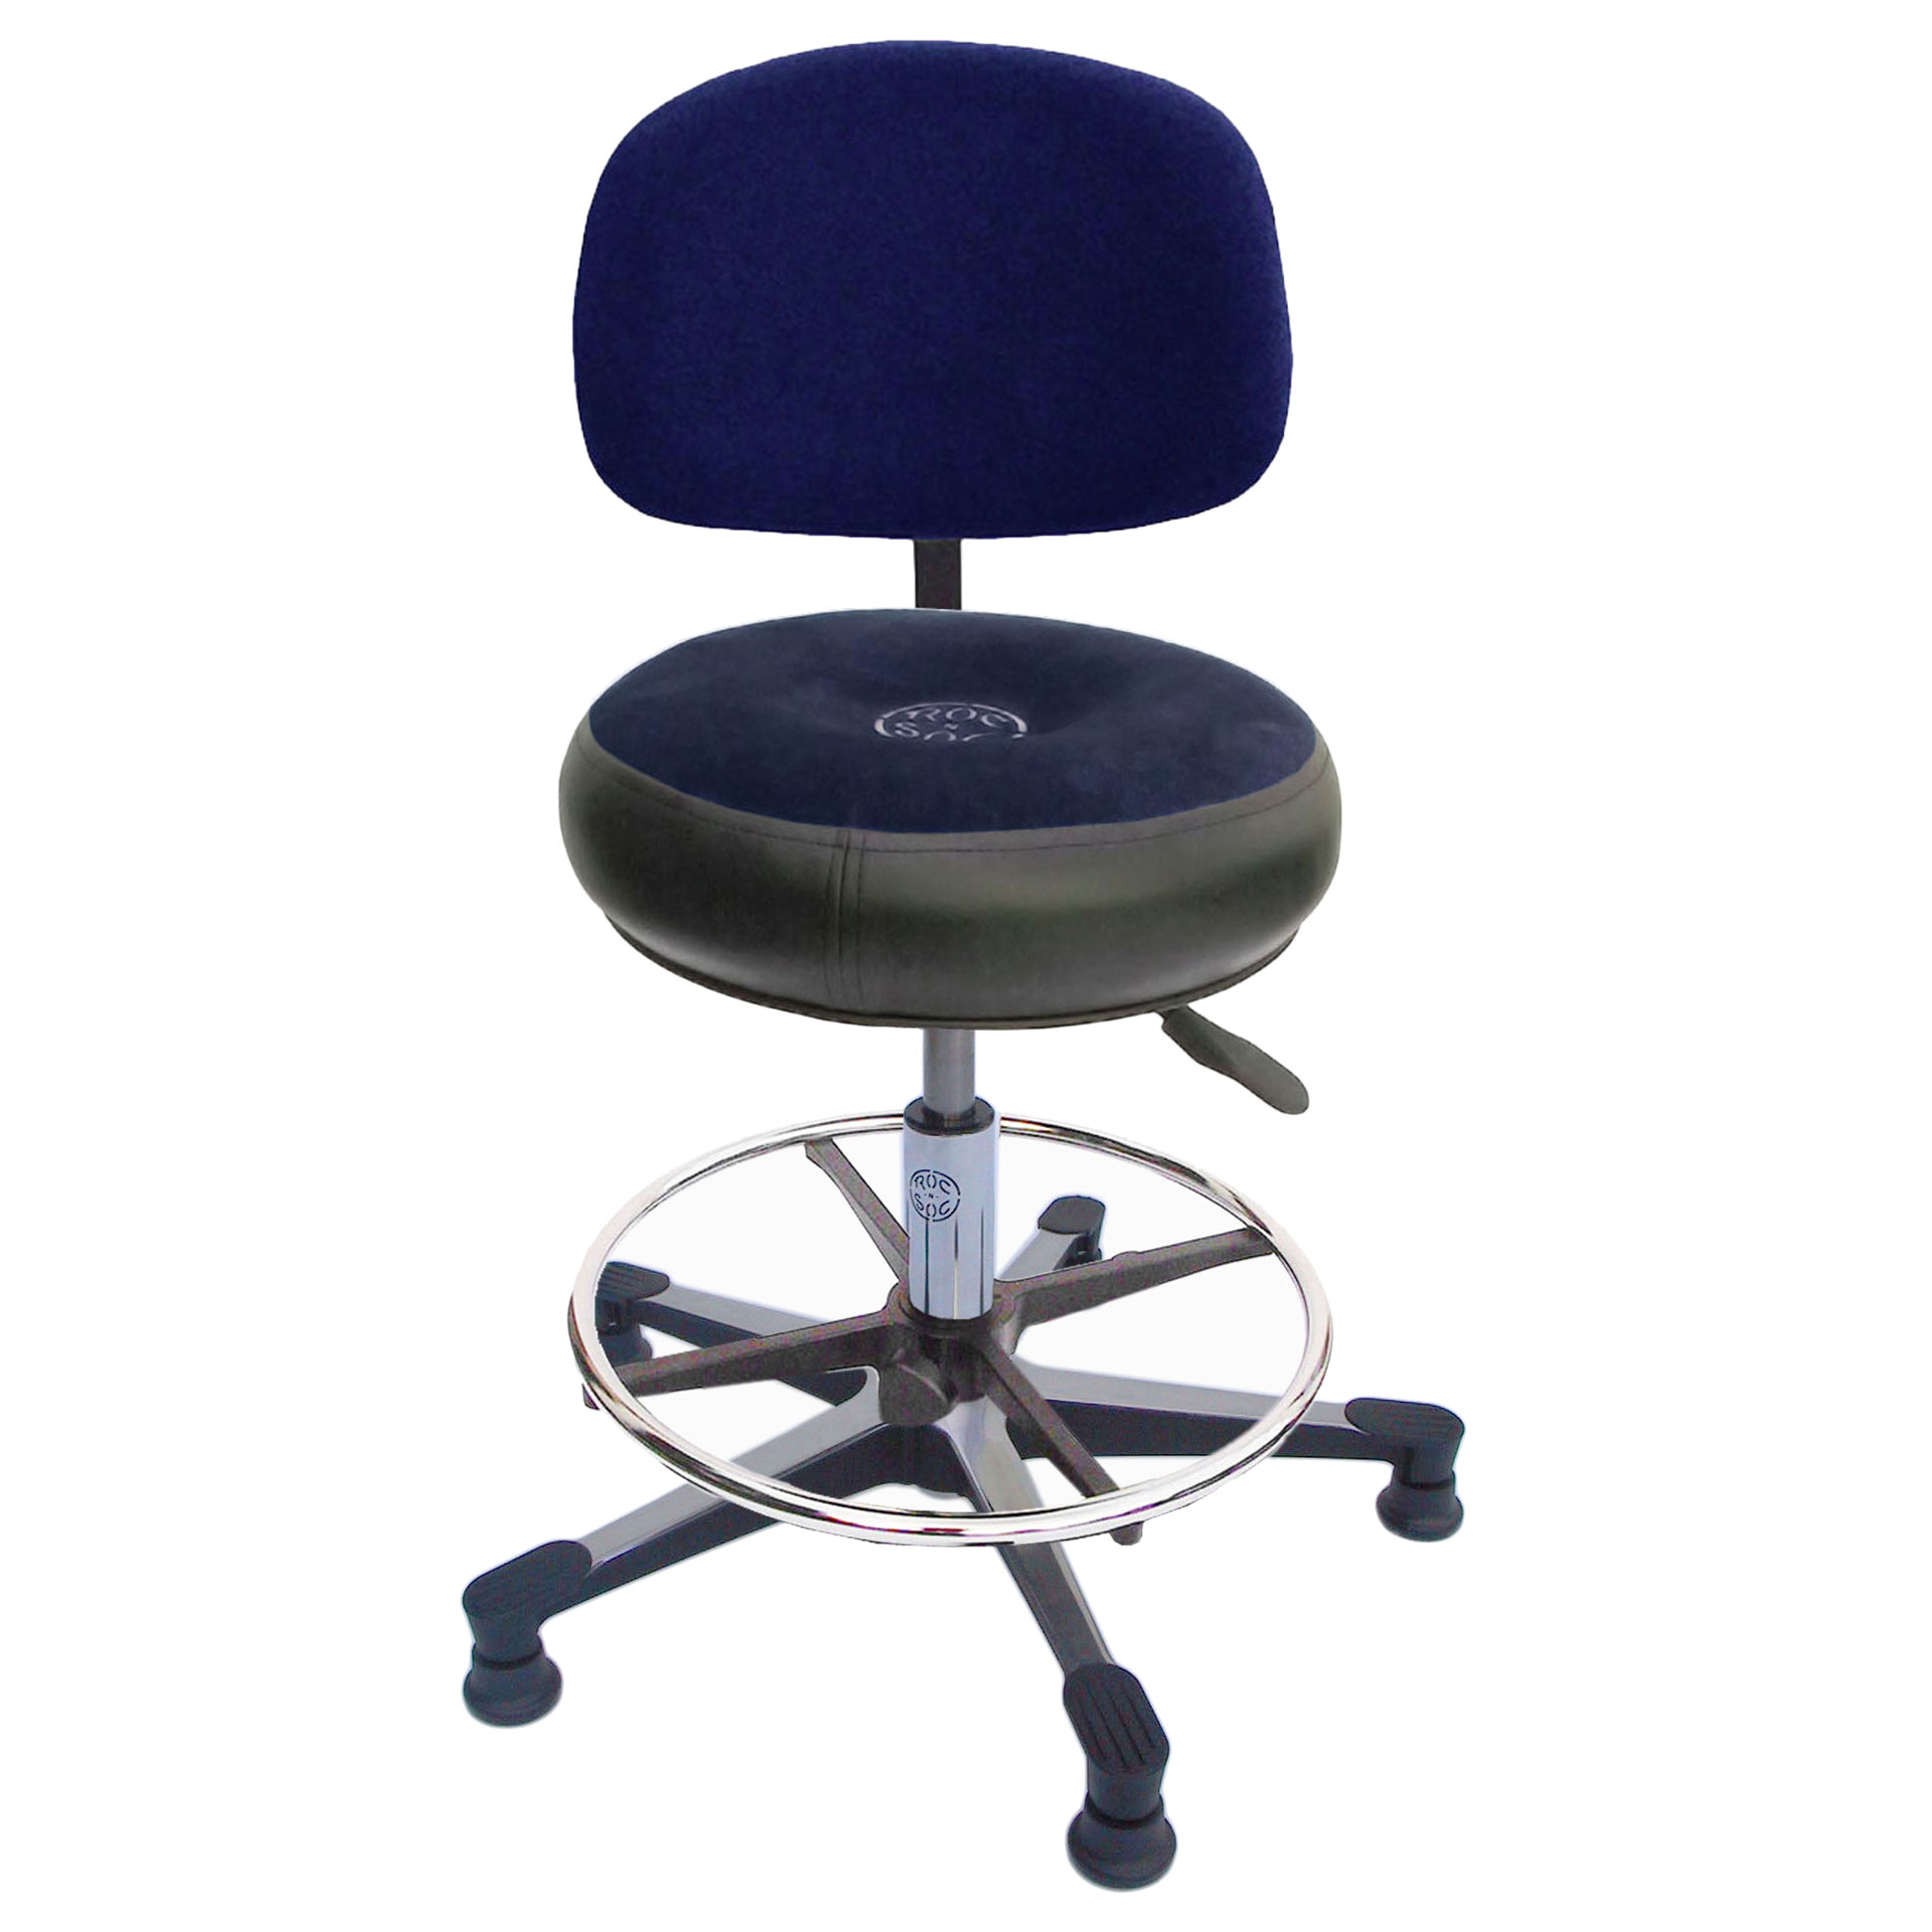 roc n soc lunar gas lift drum throne with round back rest foot ring chrome hardware clsg fr r w b. Black Bedroom Furniture Sets. Home Design Ideas